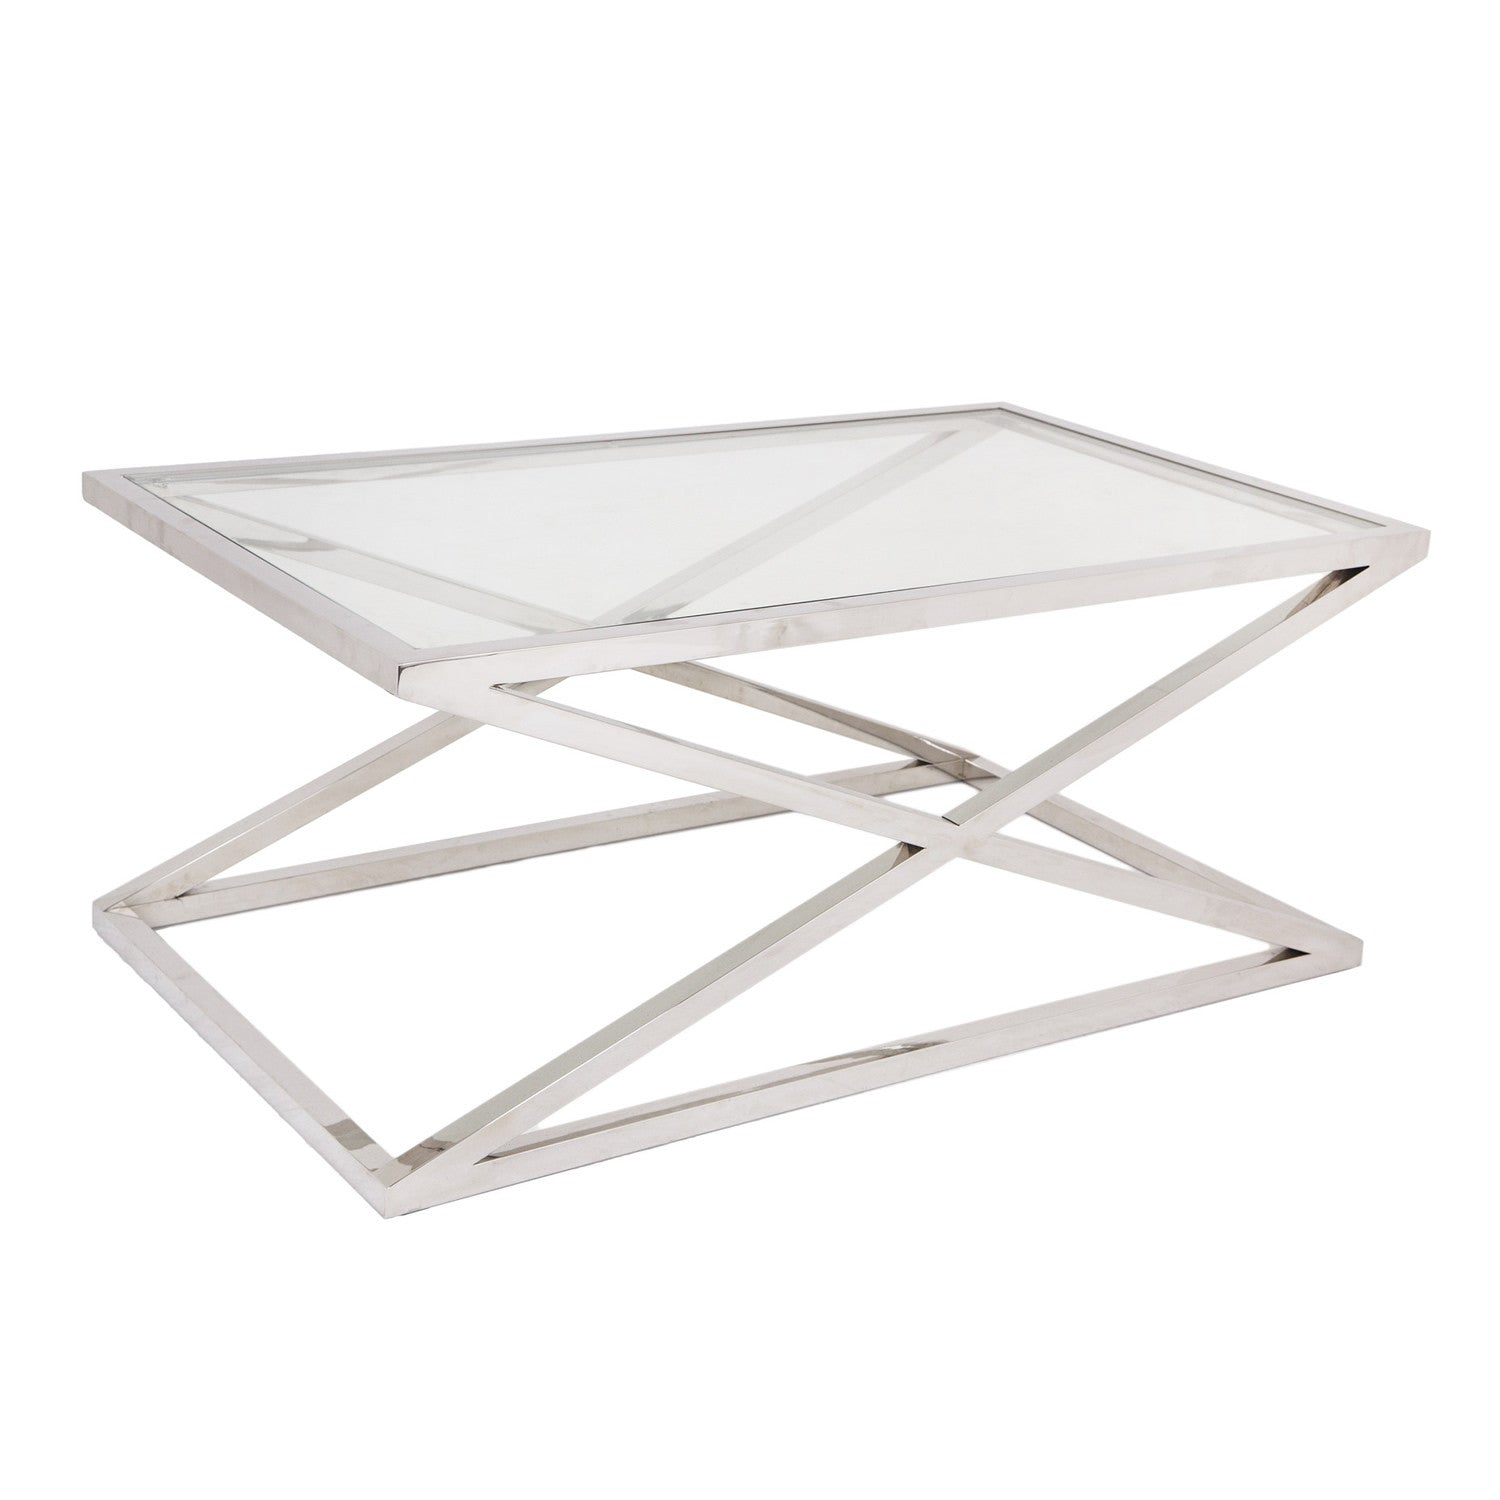 RV Astley Nico Stainless Steel & Glass Coffee Table – Shropshire